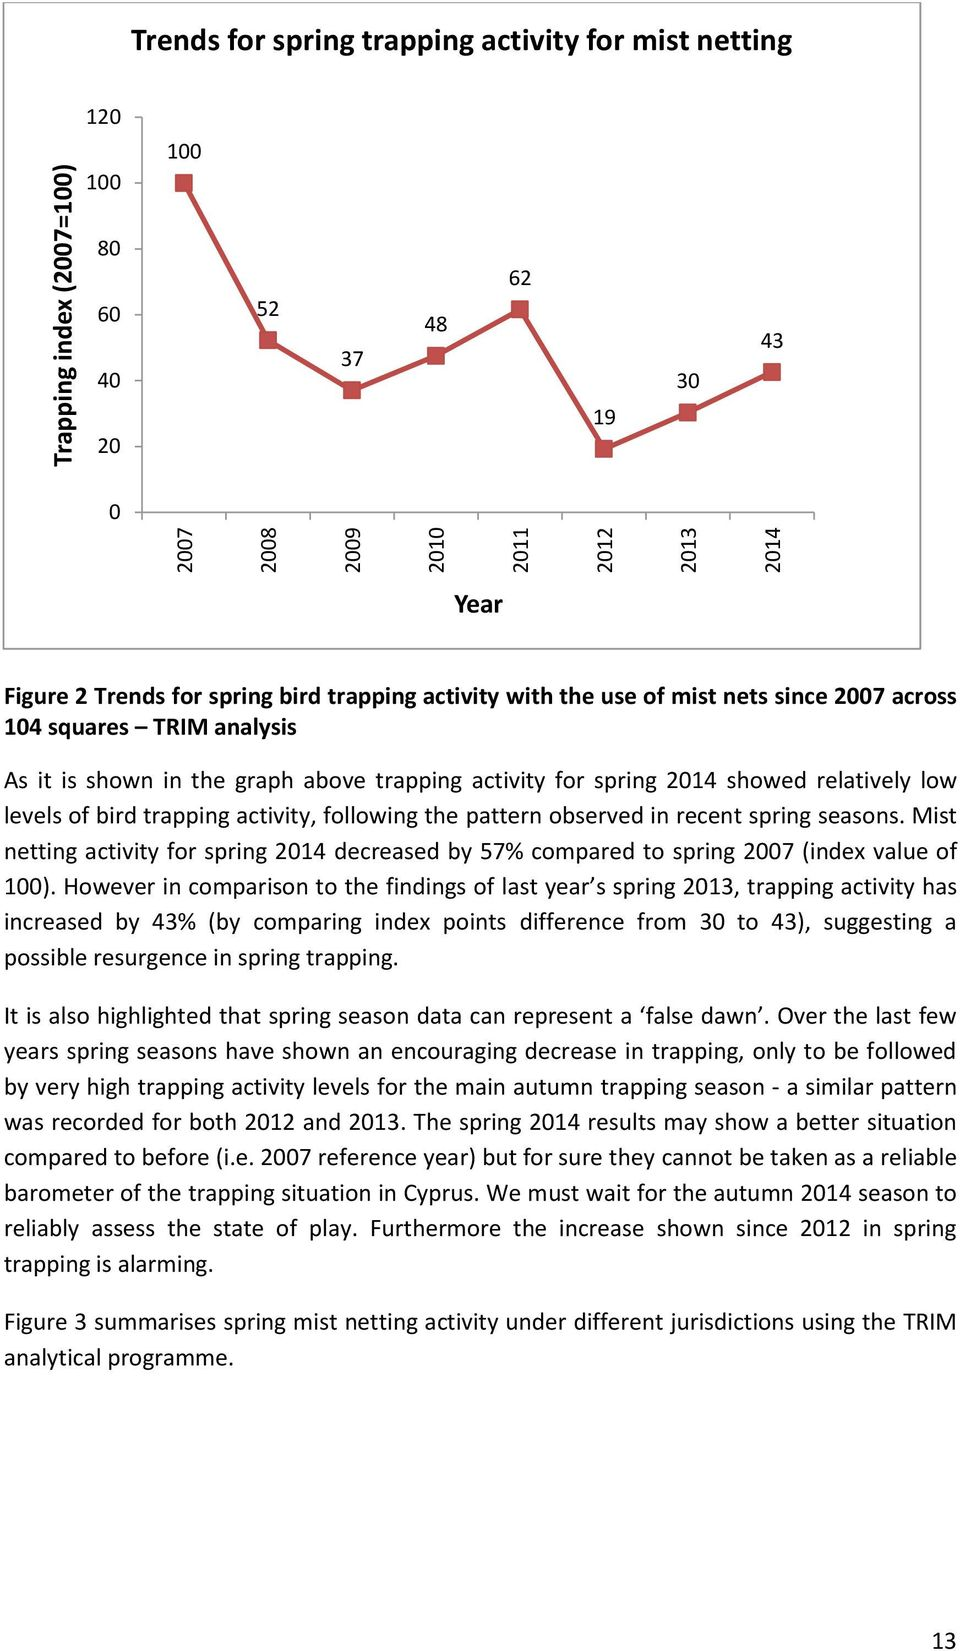 trapping activity, following the pattern observed in recent spring seasons. Mist netting activity for spring 2014 decreased by 57% compared to spring 2007 (index value of 100).